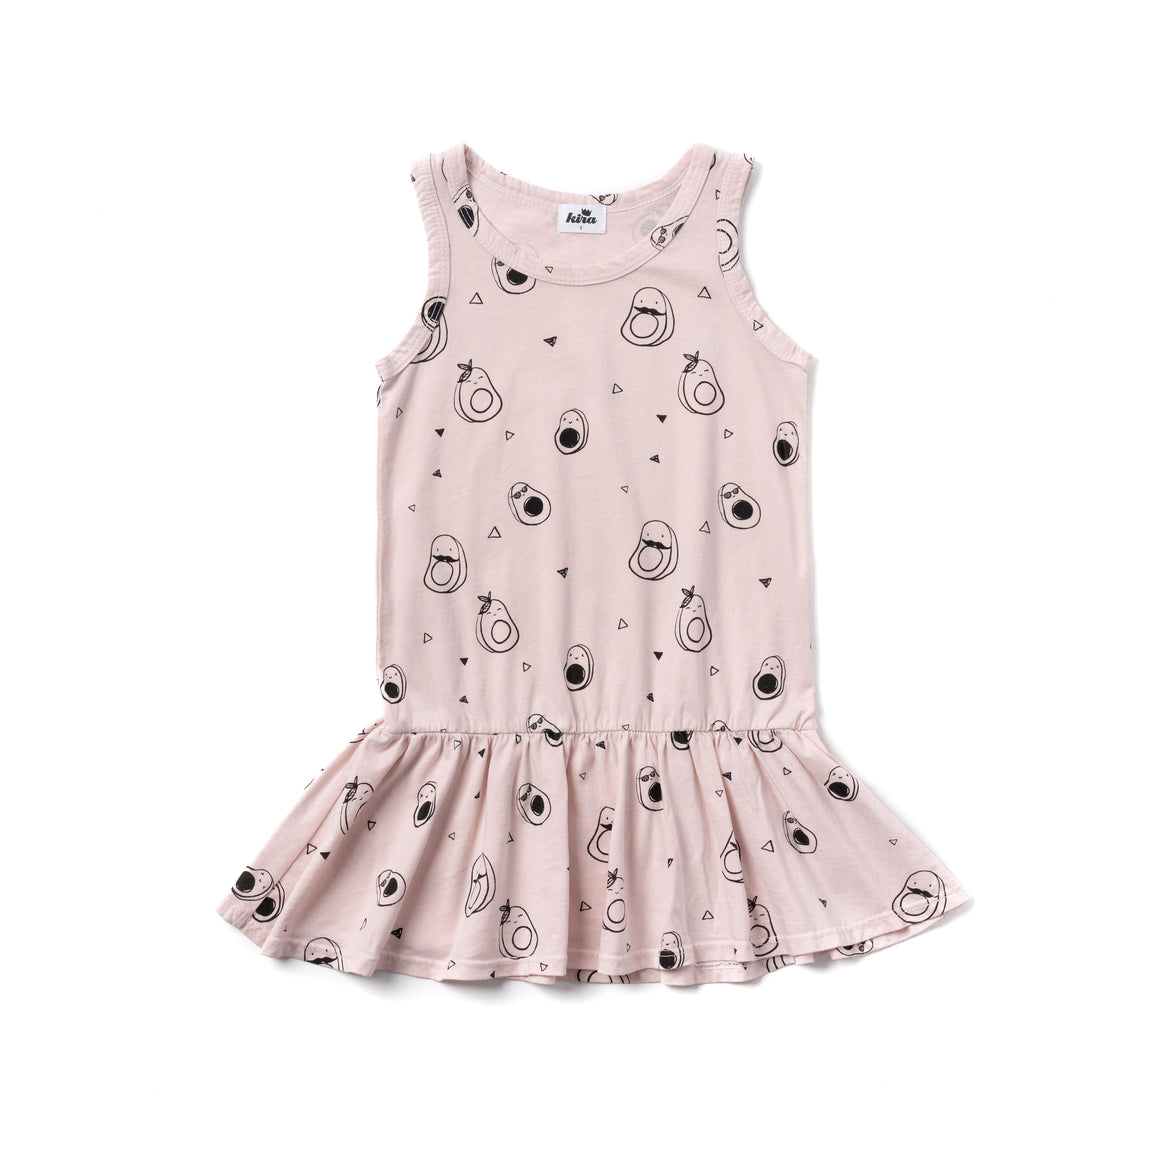 Avocado Print Tank Ruffle Dress, Powder Pink